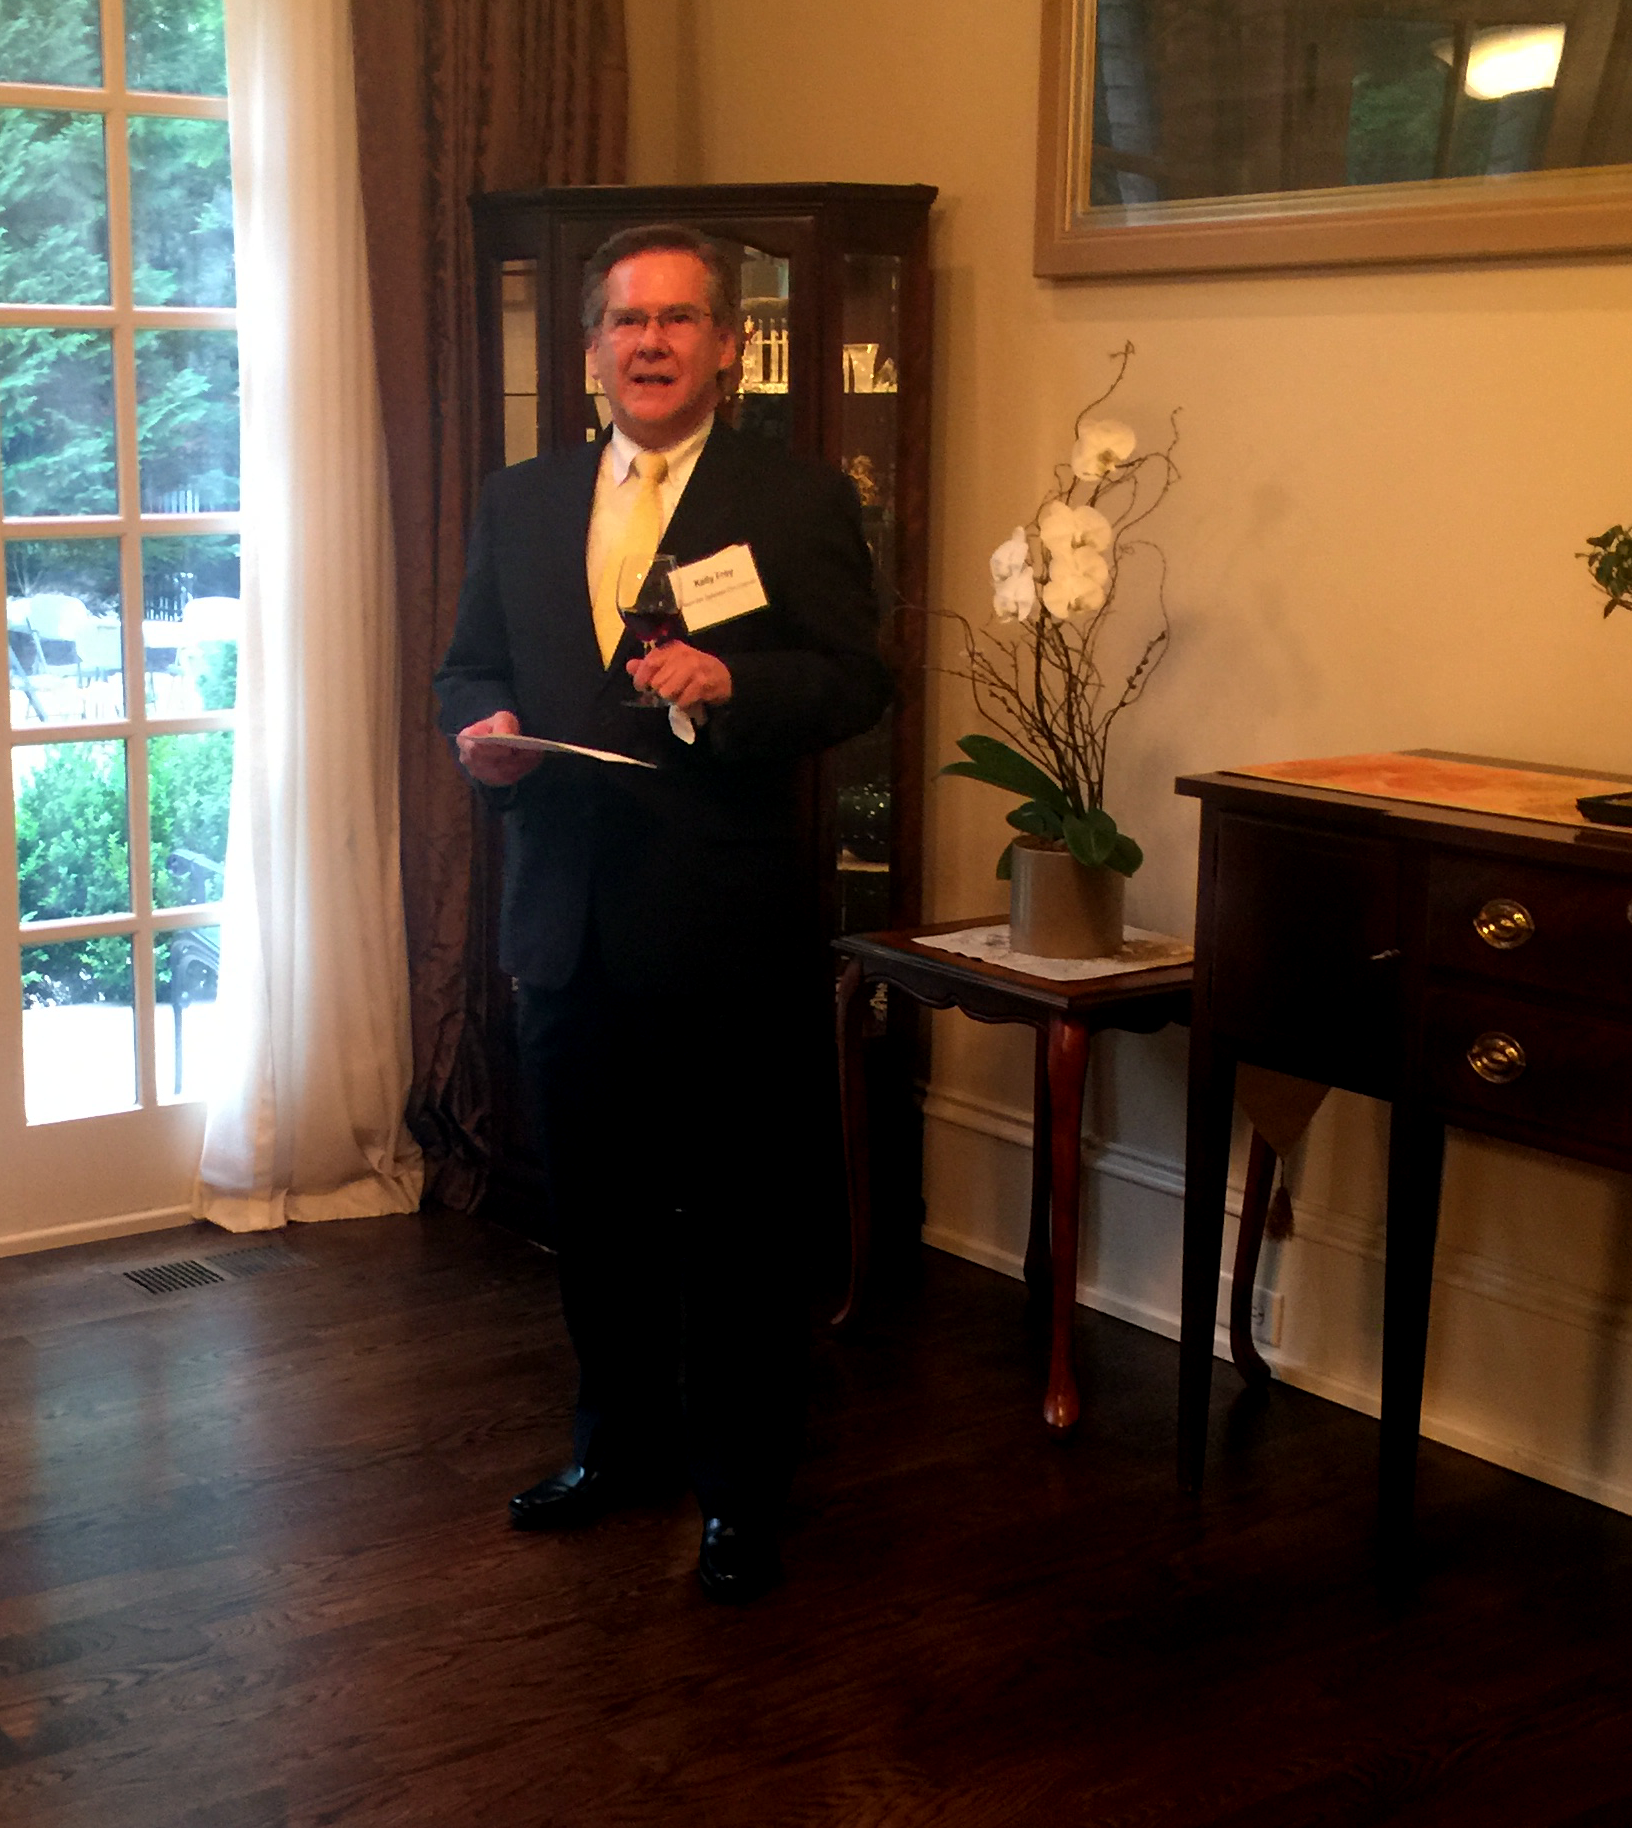 Kelly Frey, President of Movie City Films was asked to make a toast at the home of The Consul-General of Japan and Mrs. Kinefuchi at an Appreciation Reception in congratulation of the success of the Nashville Cherry Blossom Festival and the First Annual Japan Week.